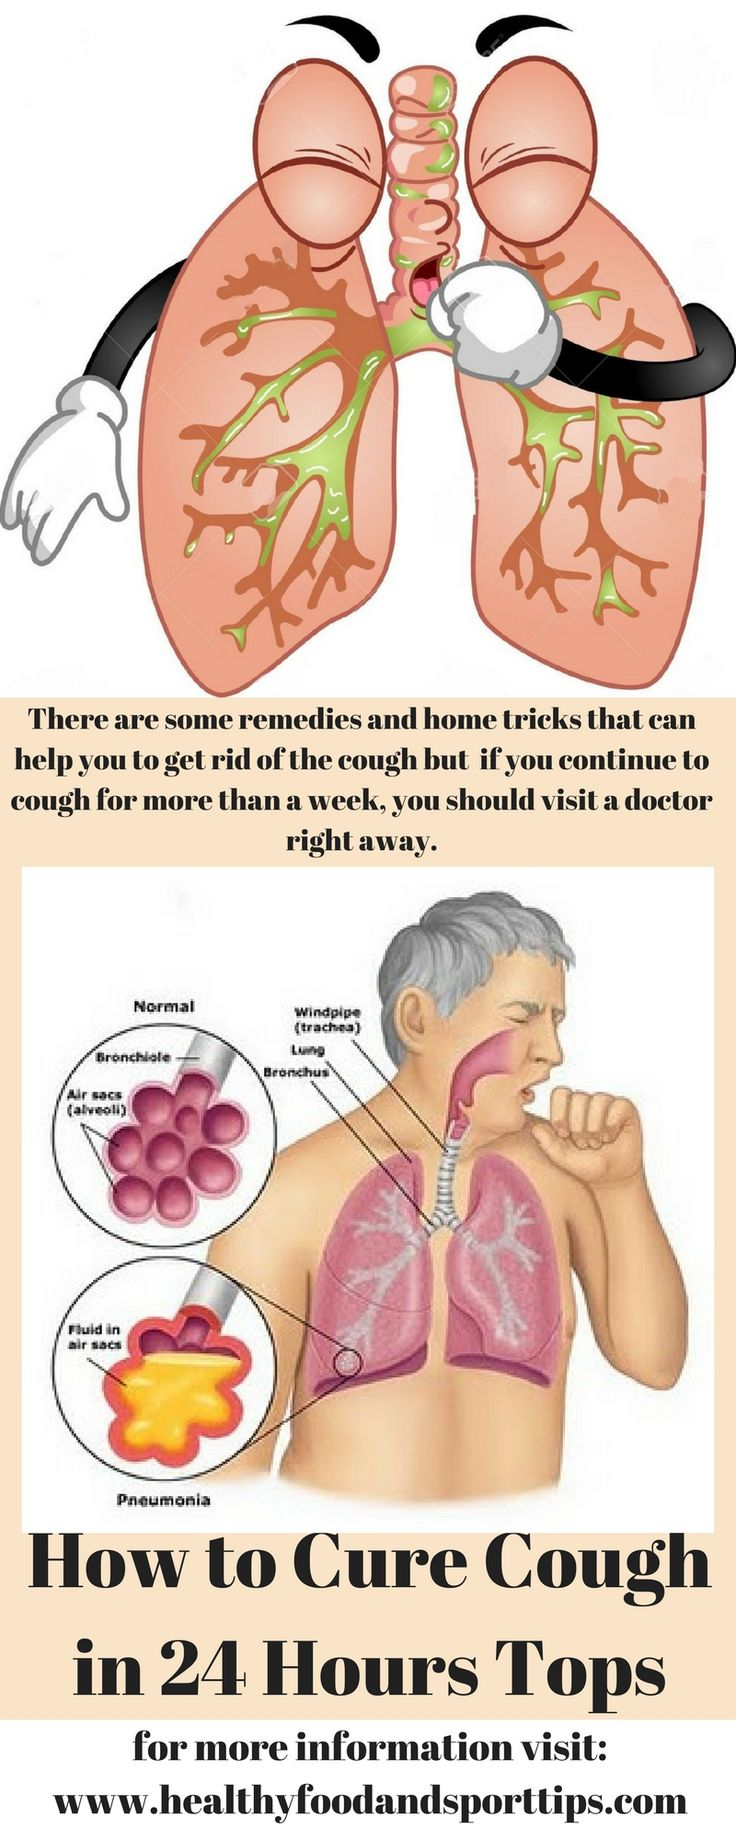 How to Cure Cough in 24 Hours Tops